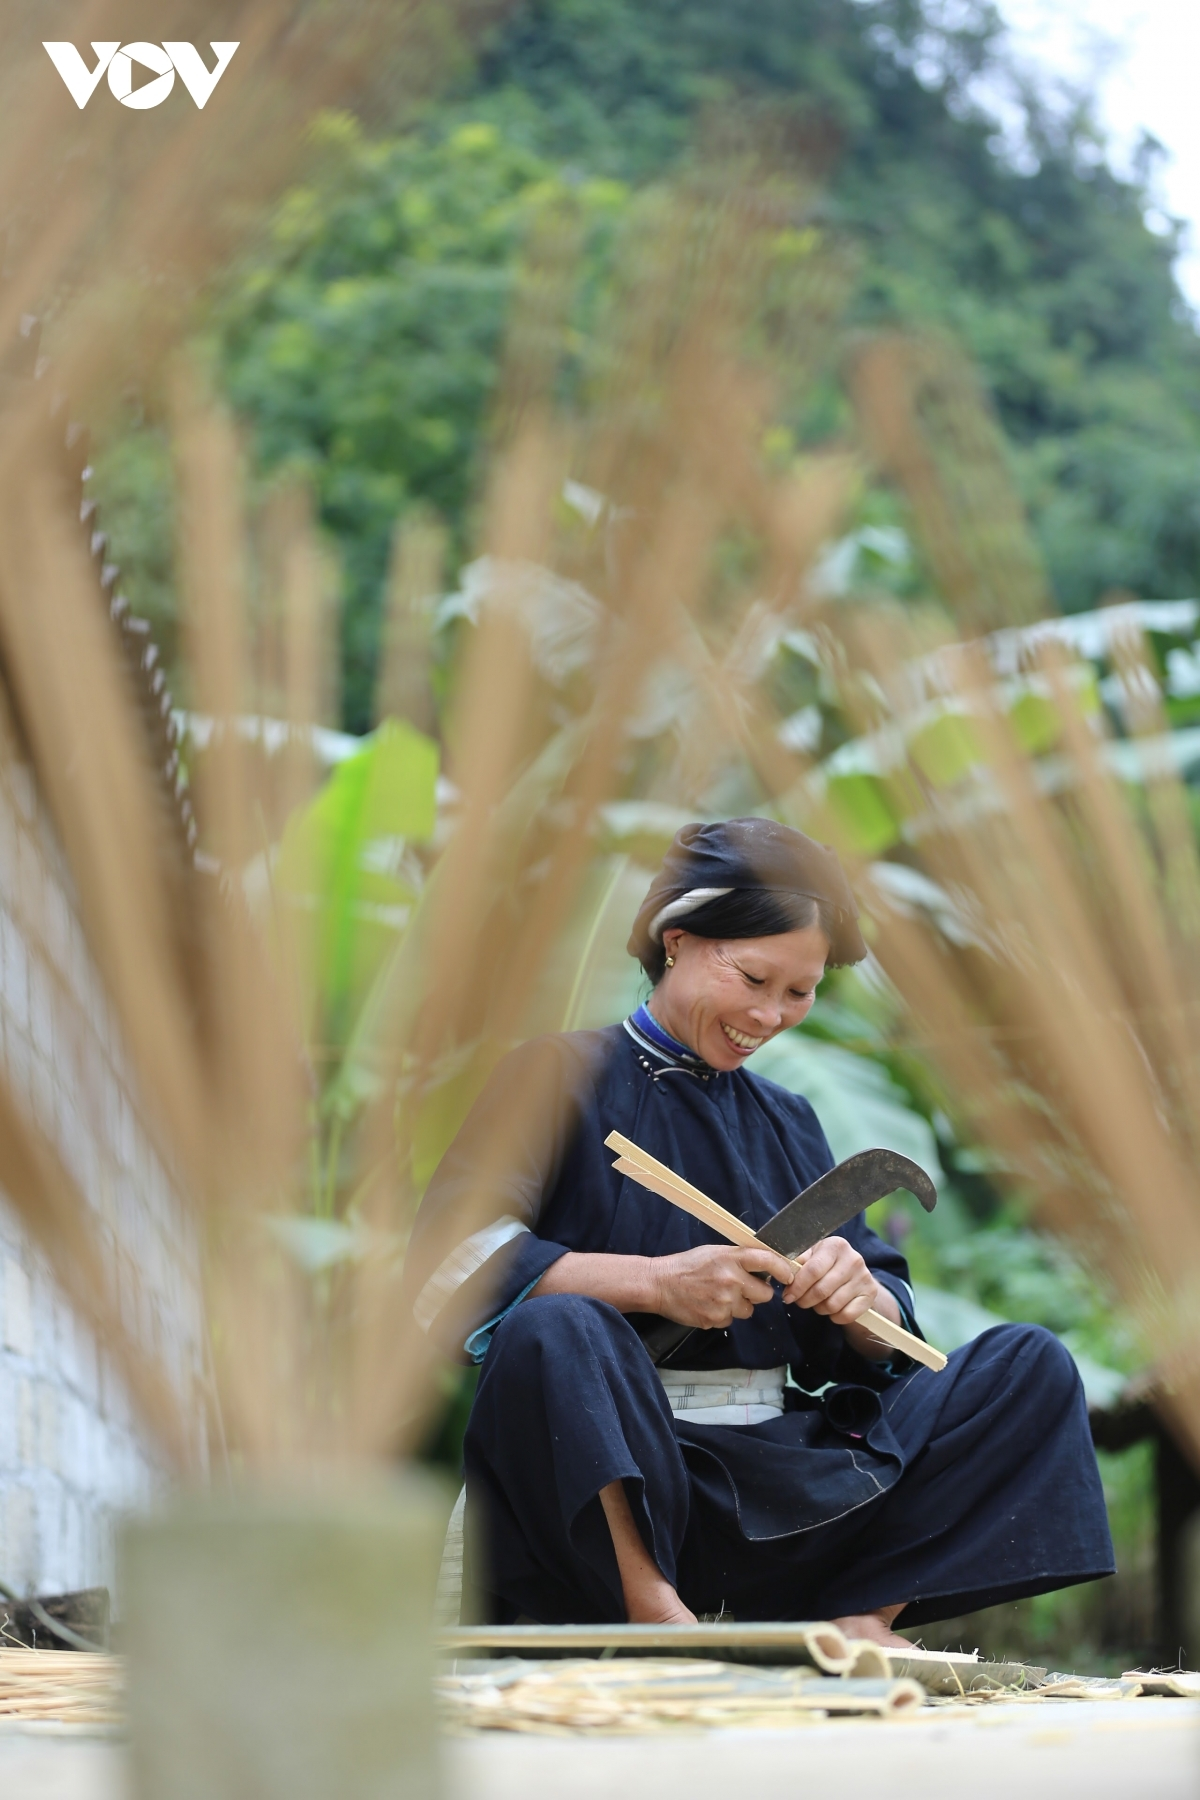 For several hundreds of years, members of the Nung ethnic group follow their traditional craft of making incense sticks from agarwood trees.